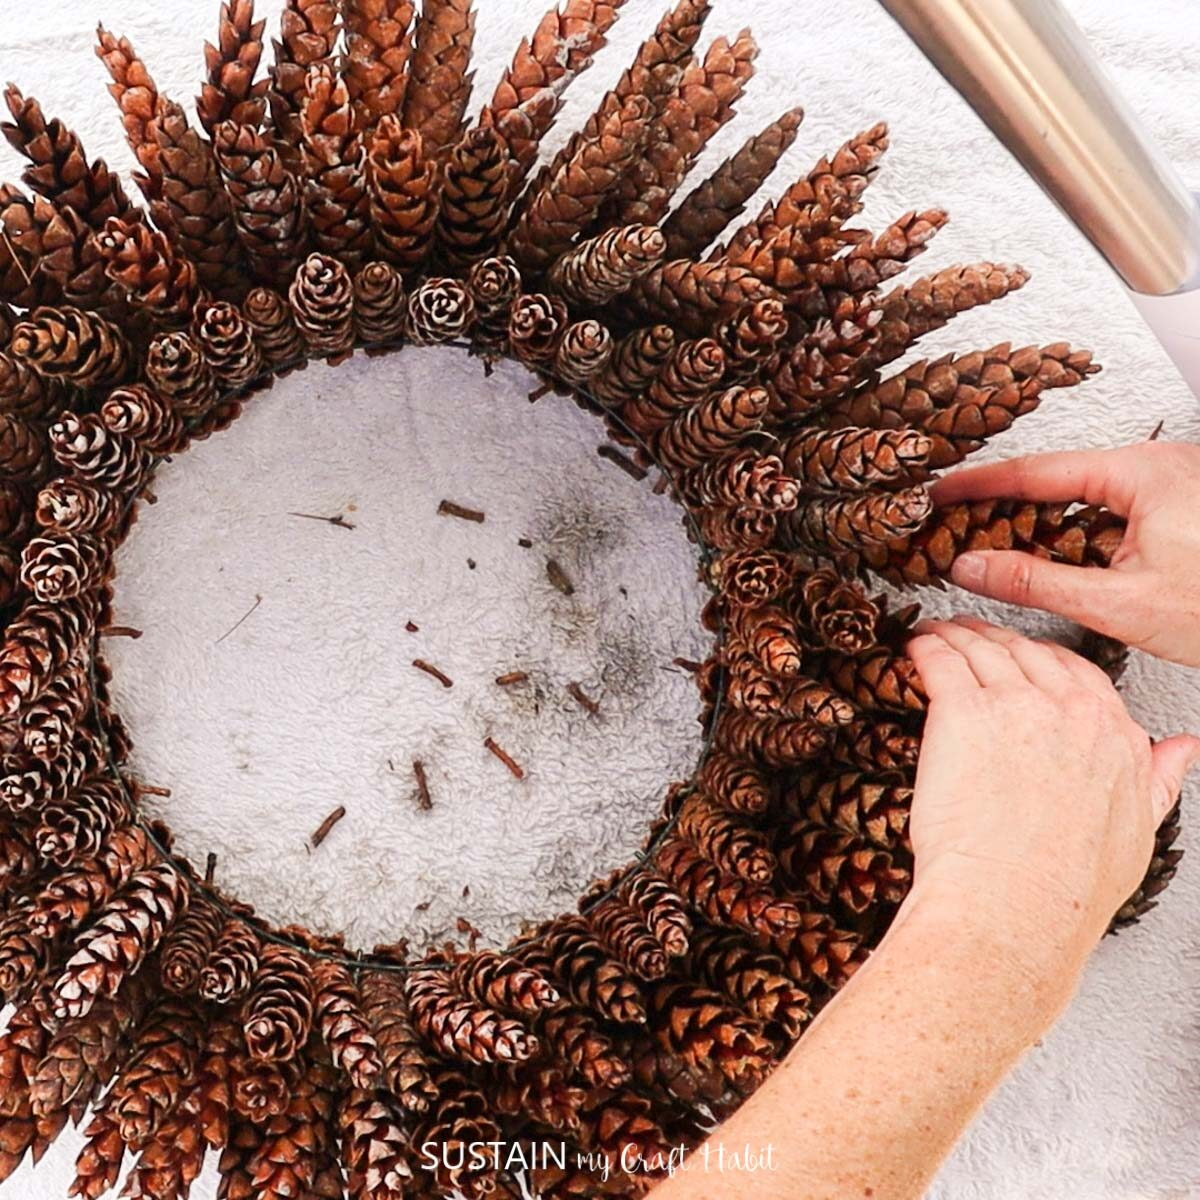 Adding the last pinecone to the wreath.